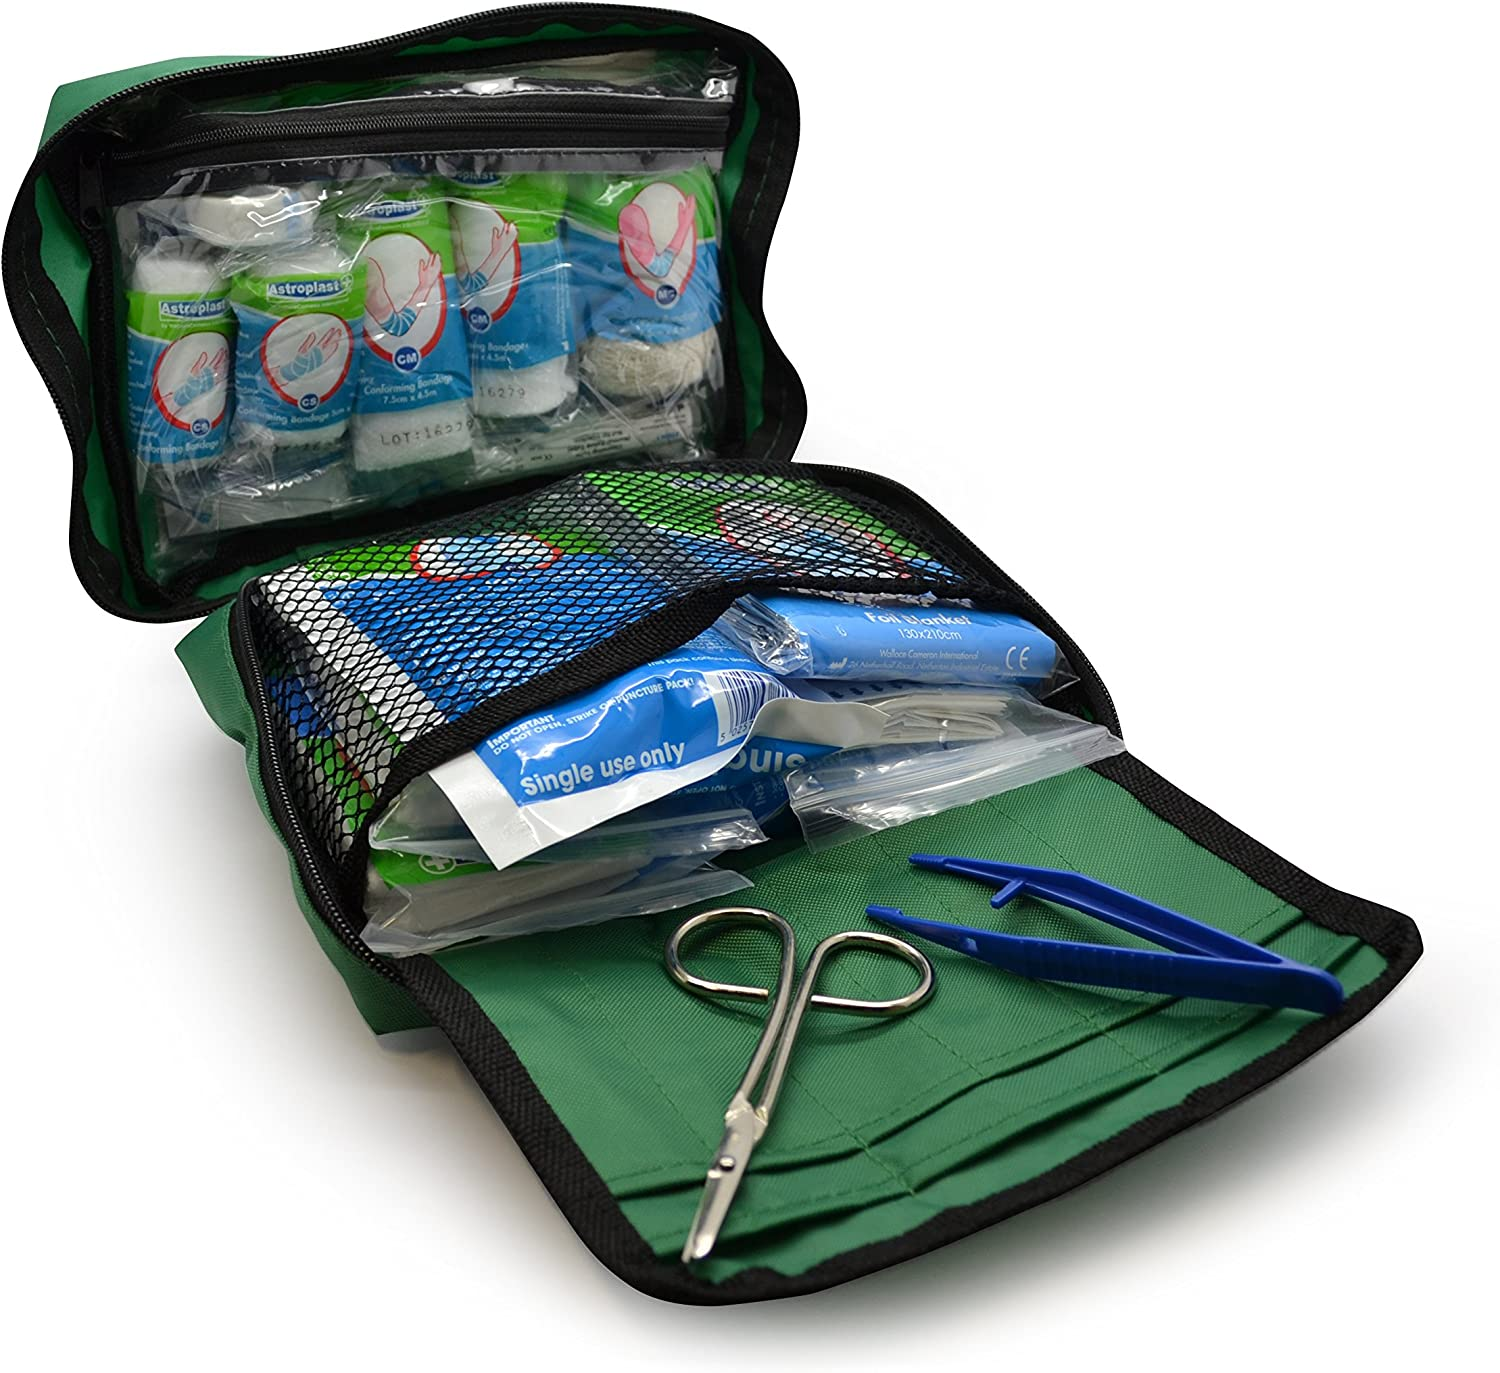 Travel Includes Eyewash 96 Piece Premium First Aid Kit Bag Car 2 x Cold Caravan Workplace Office Ice Packs and Emergency Blanket for Home